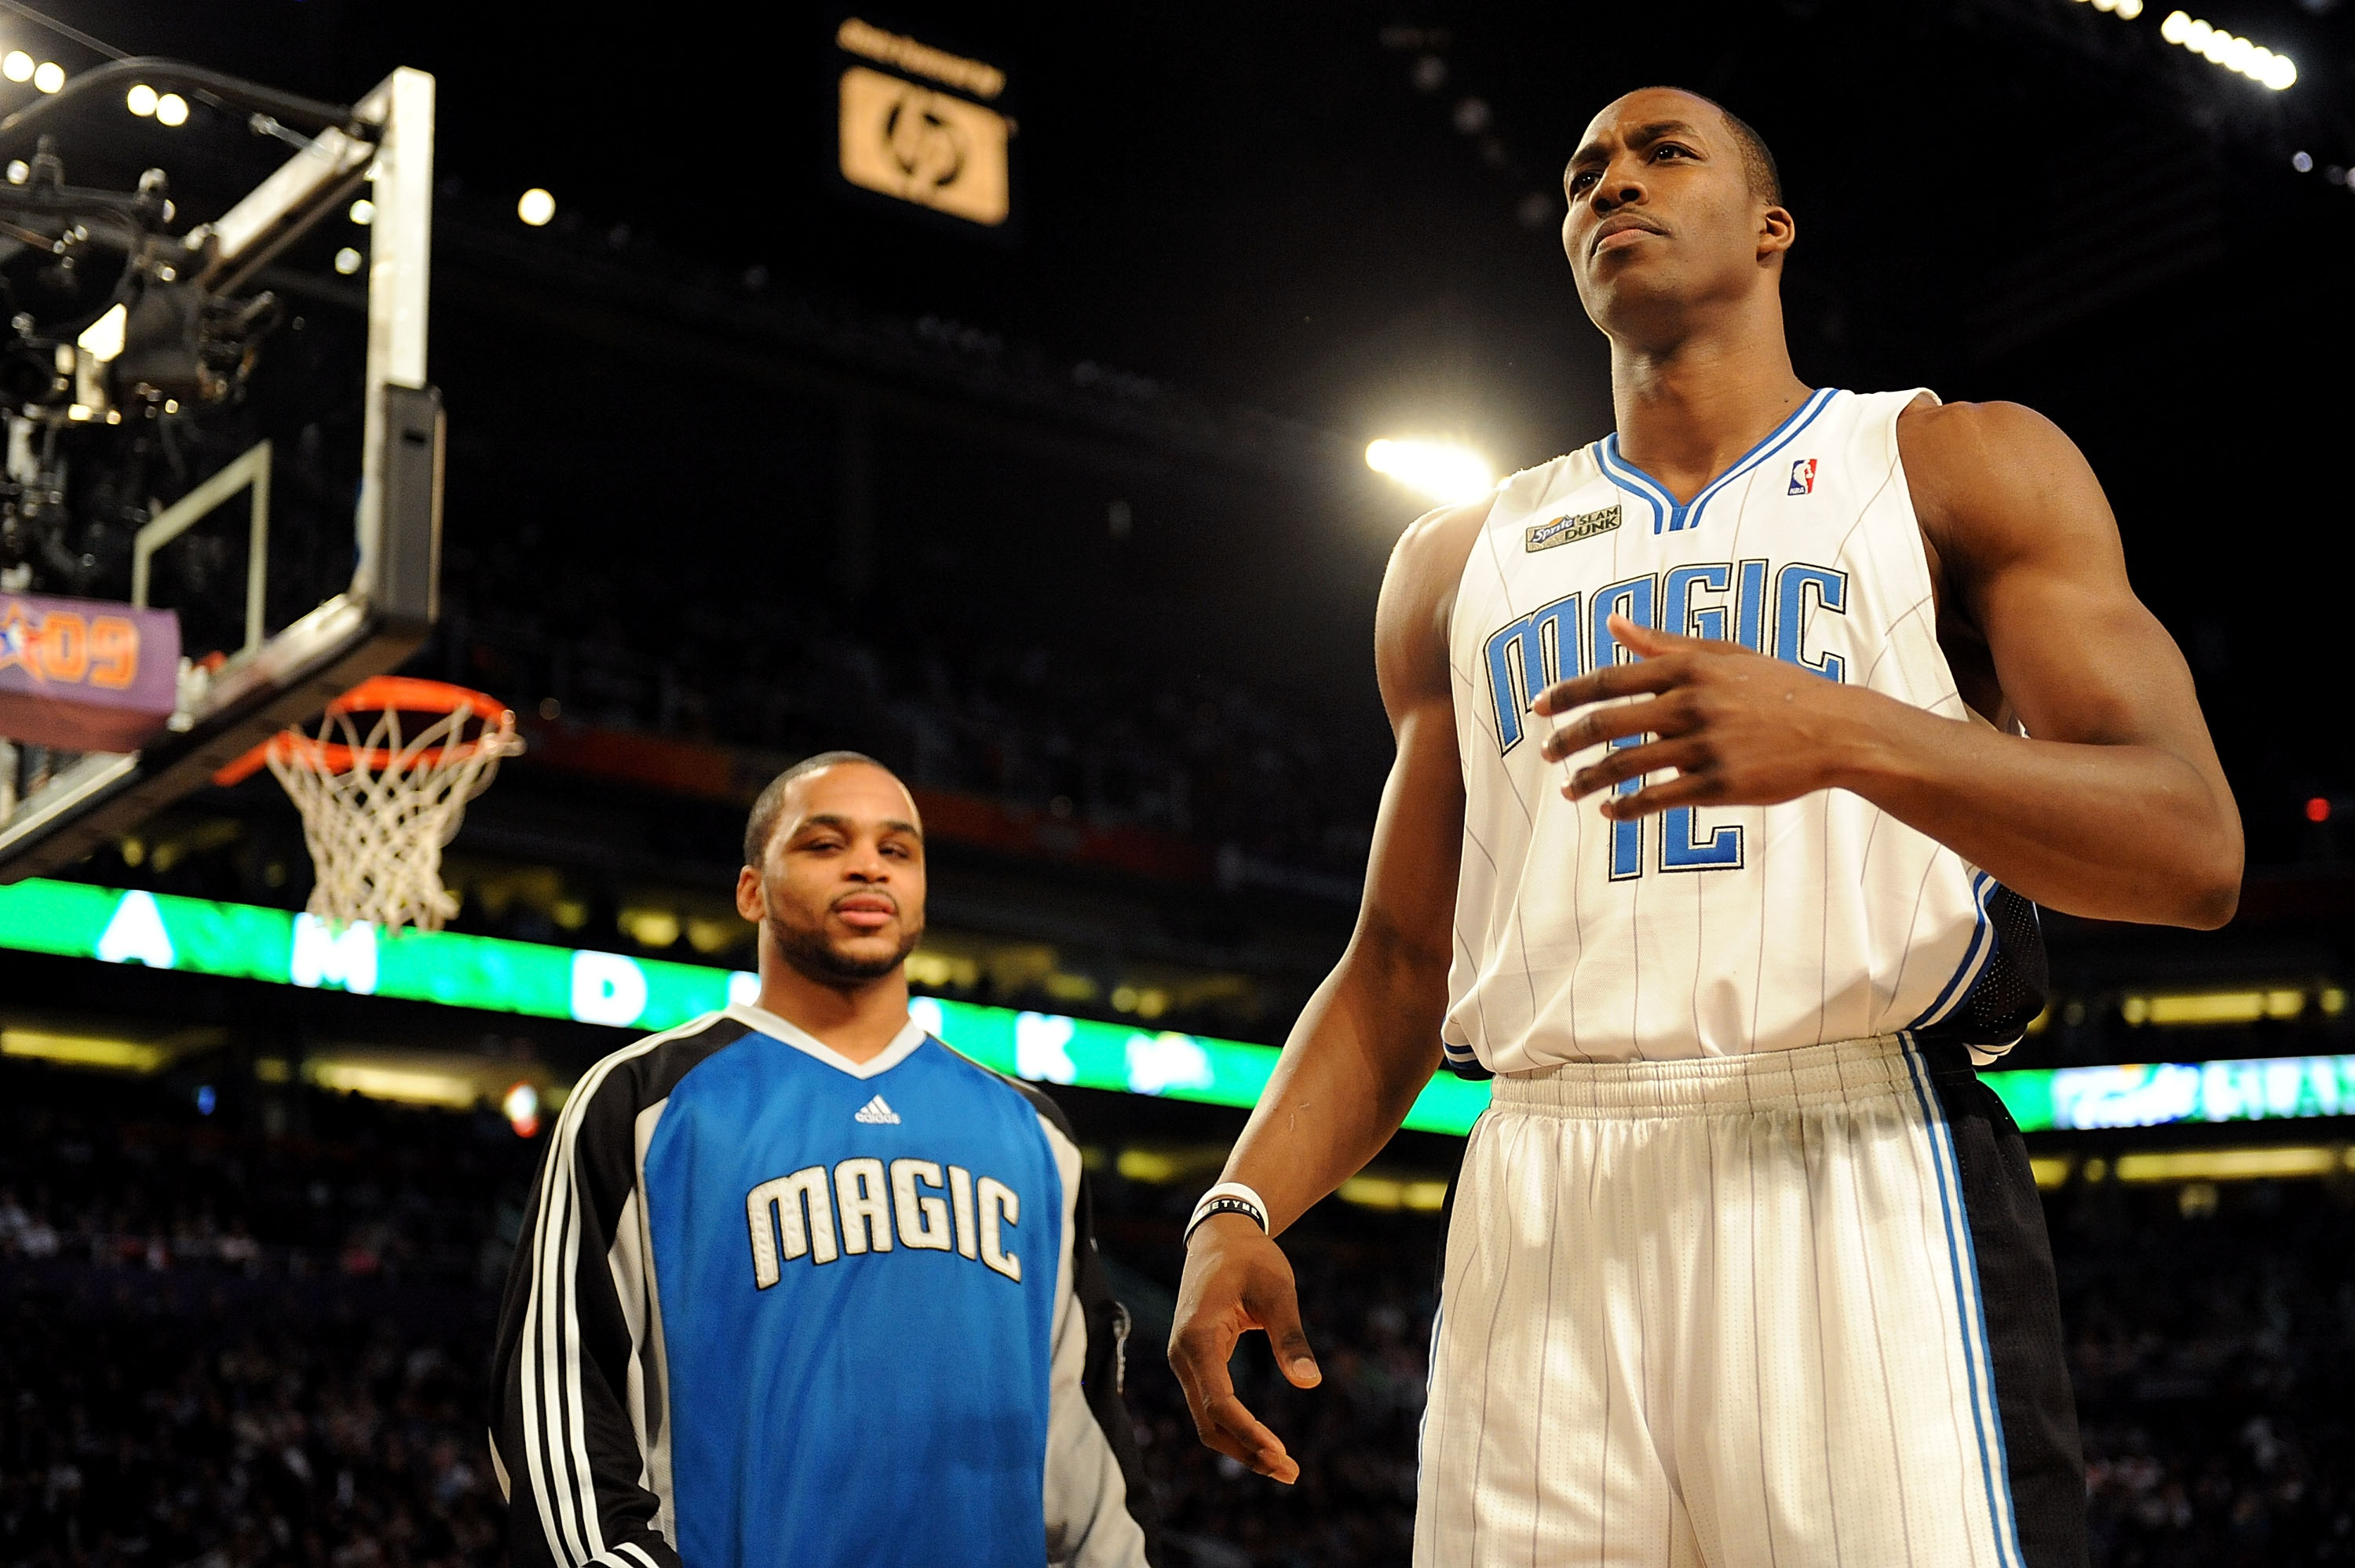 PHOENIX - FEBRUARY 14:  Jameer Nelson helps out teammate Dwight Howard of the Orlando Magic in the Sprite Slam Dunk Contest on All-Star Saturday Night, part of 2009 NBA All-Star Weekend at US Airways Center on February 14, 2009 in Phoenix, Arizona.  NOTE